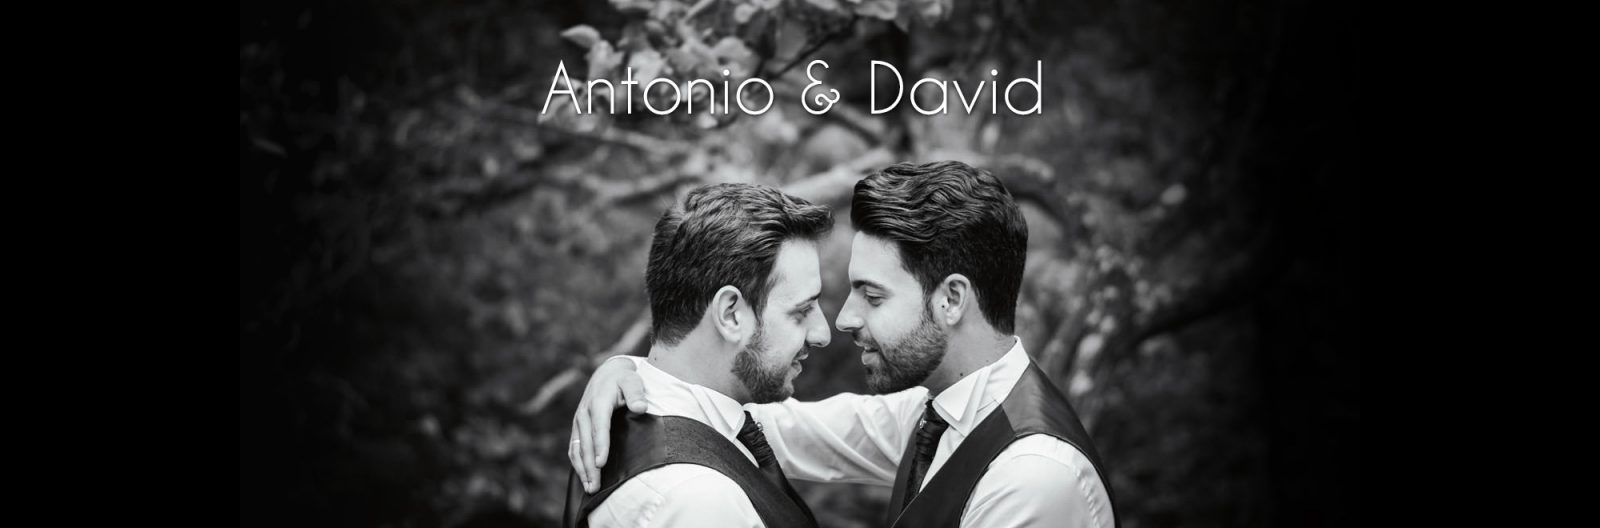 Trailer boda Antonio & David en Chiclana